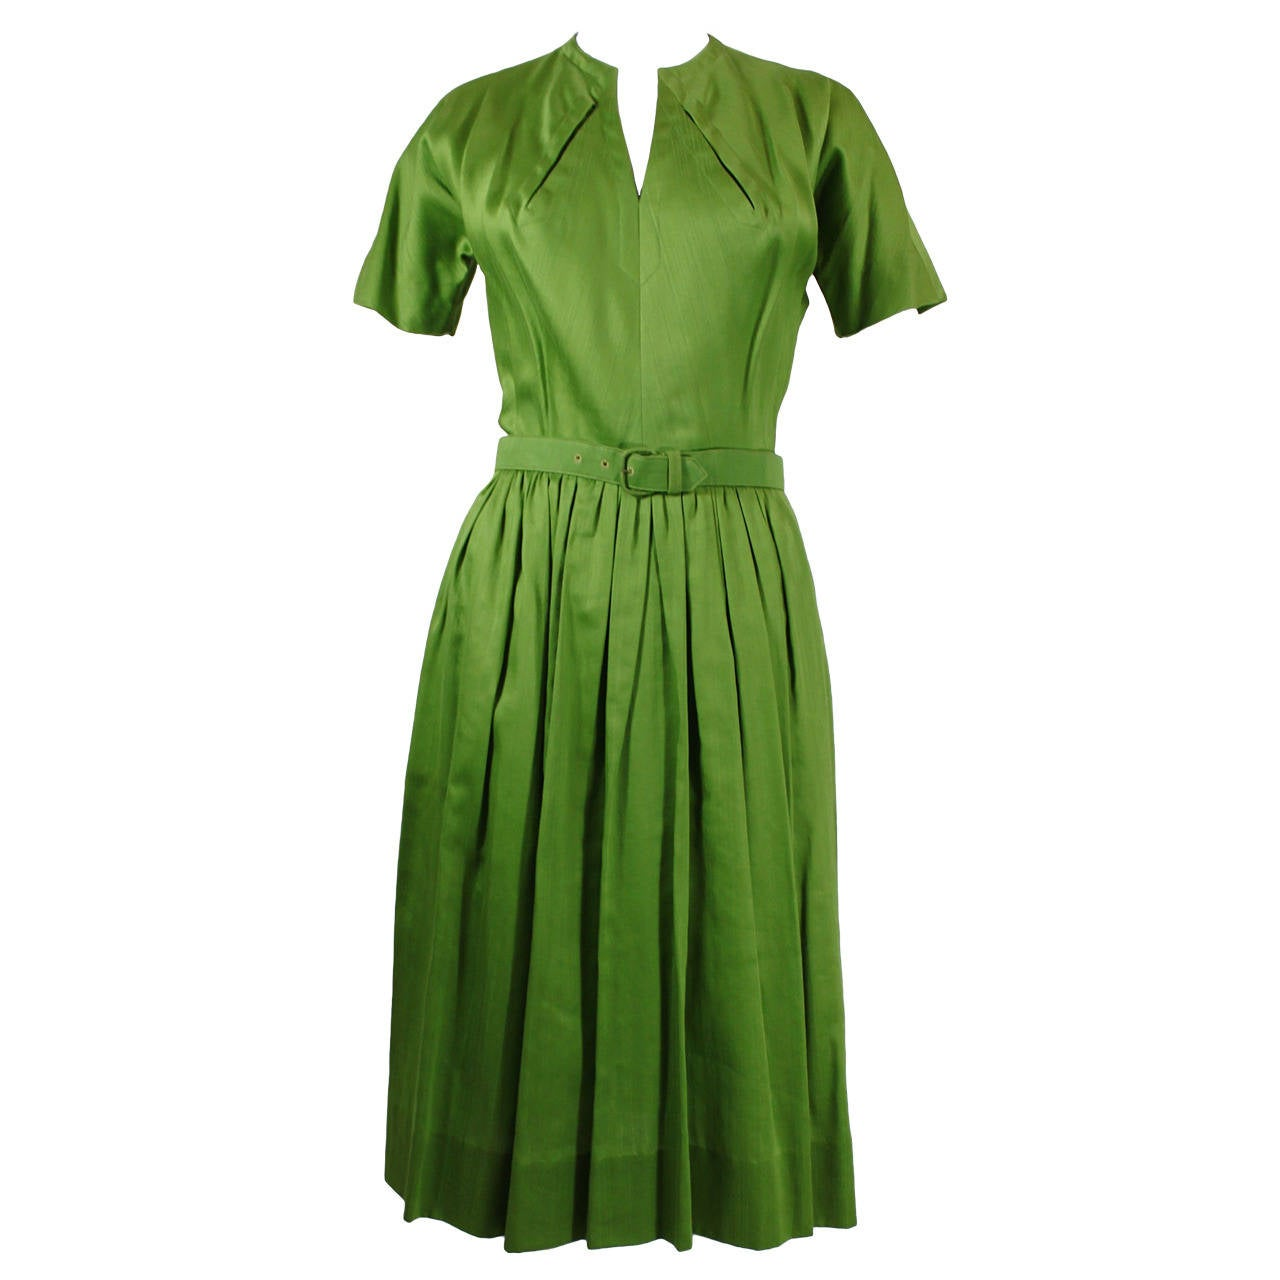 1950s Claire McCardell Lime Green Day Dress with Belt 1